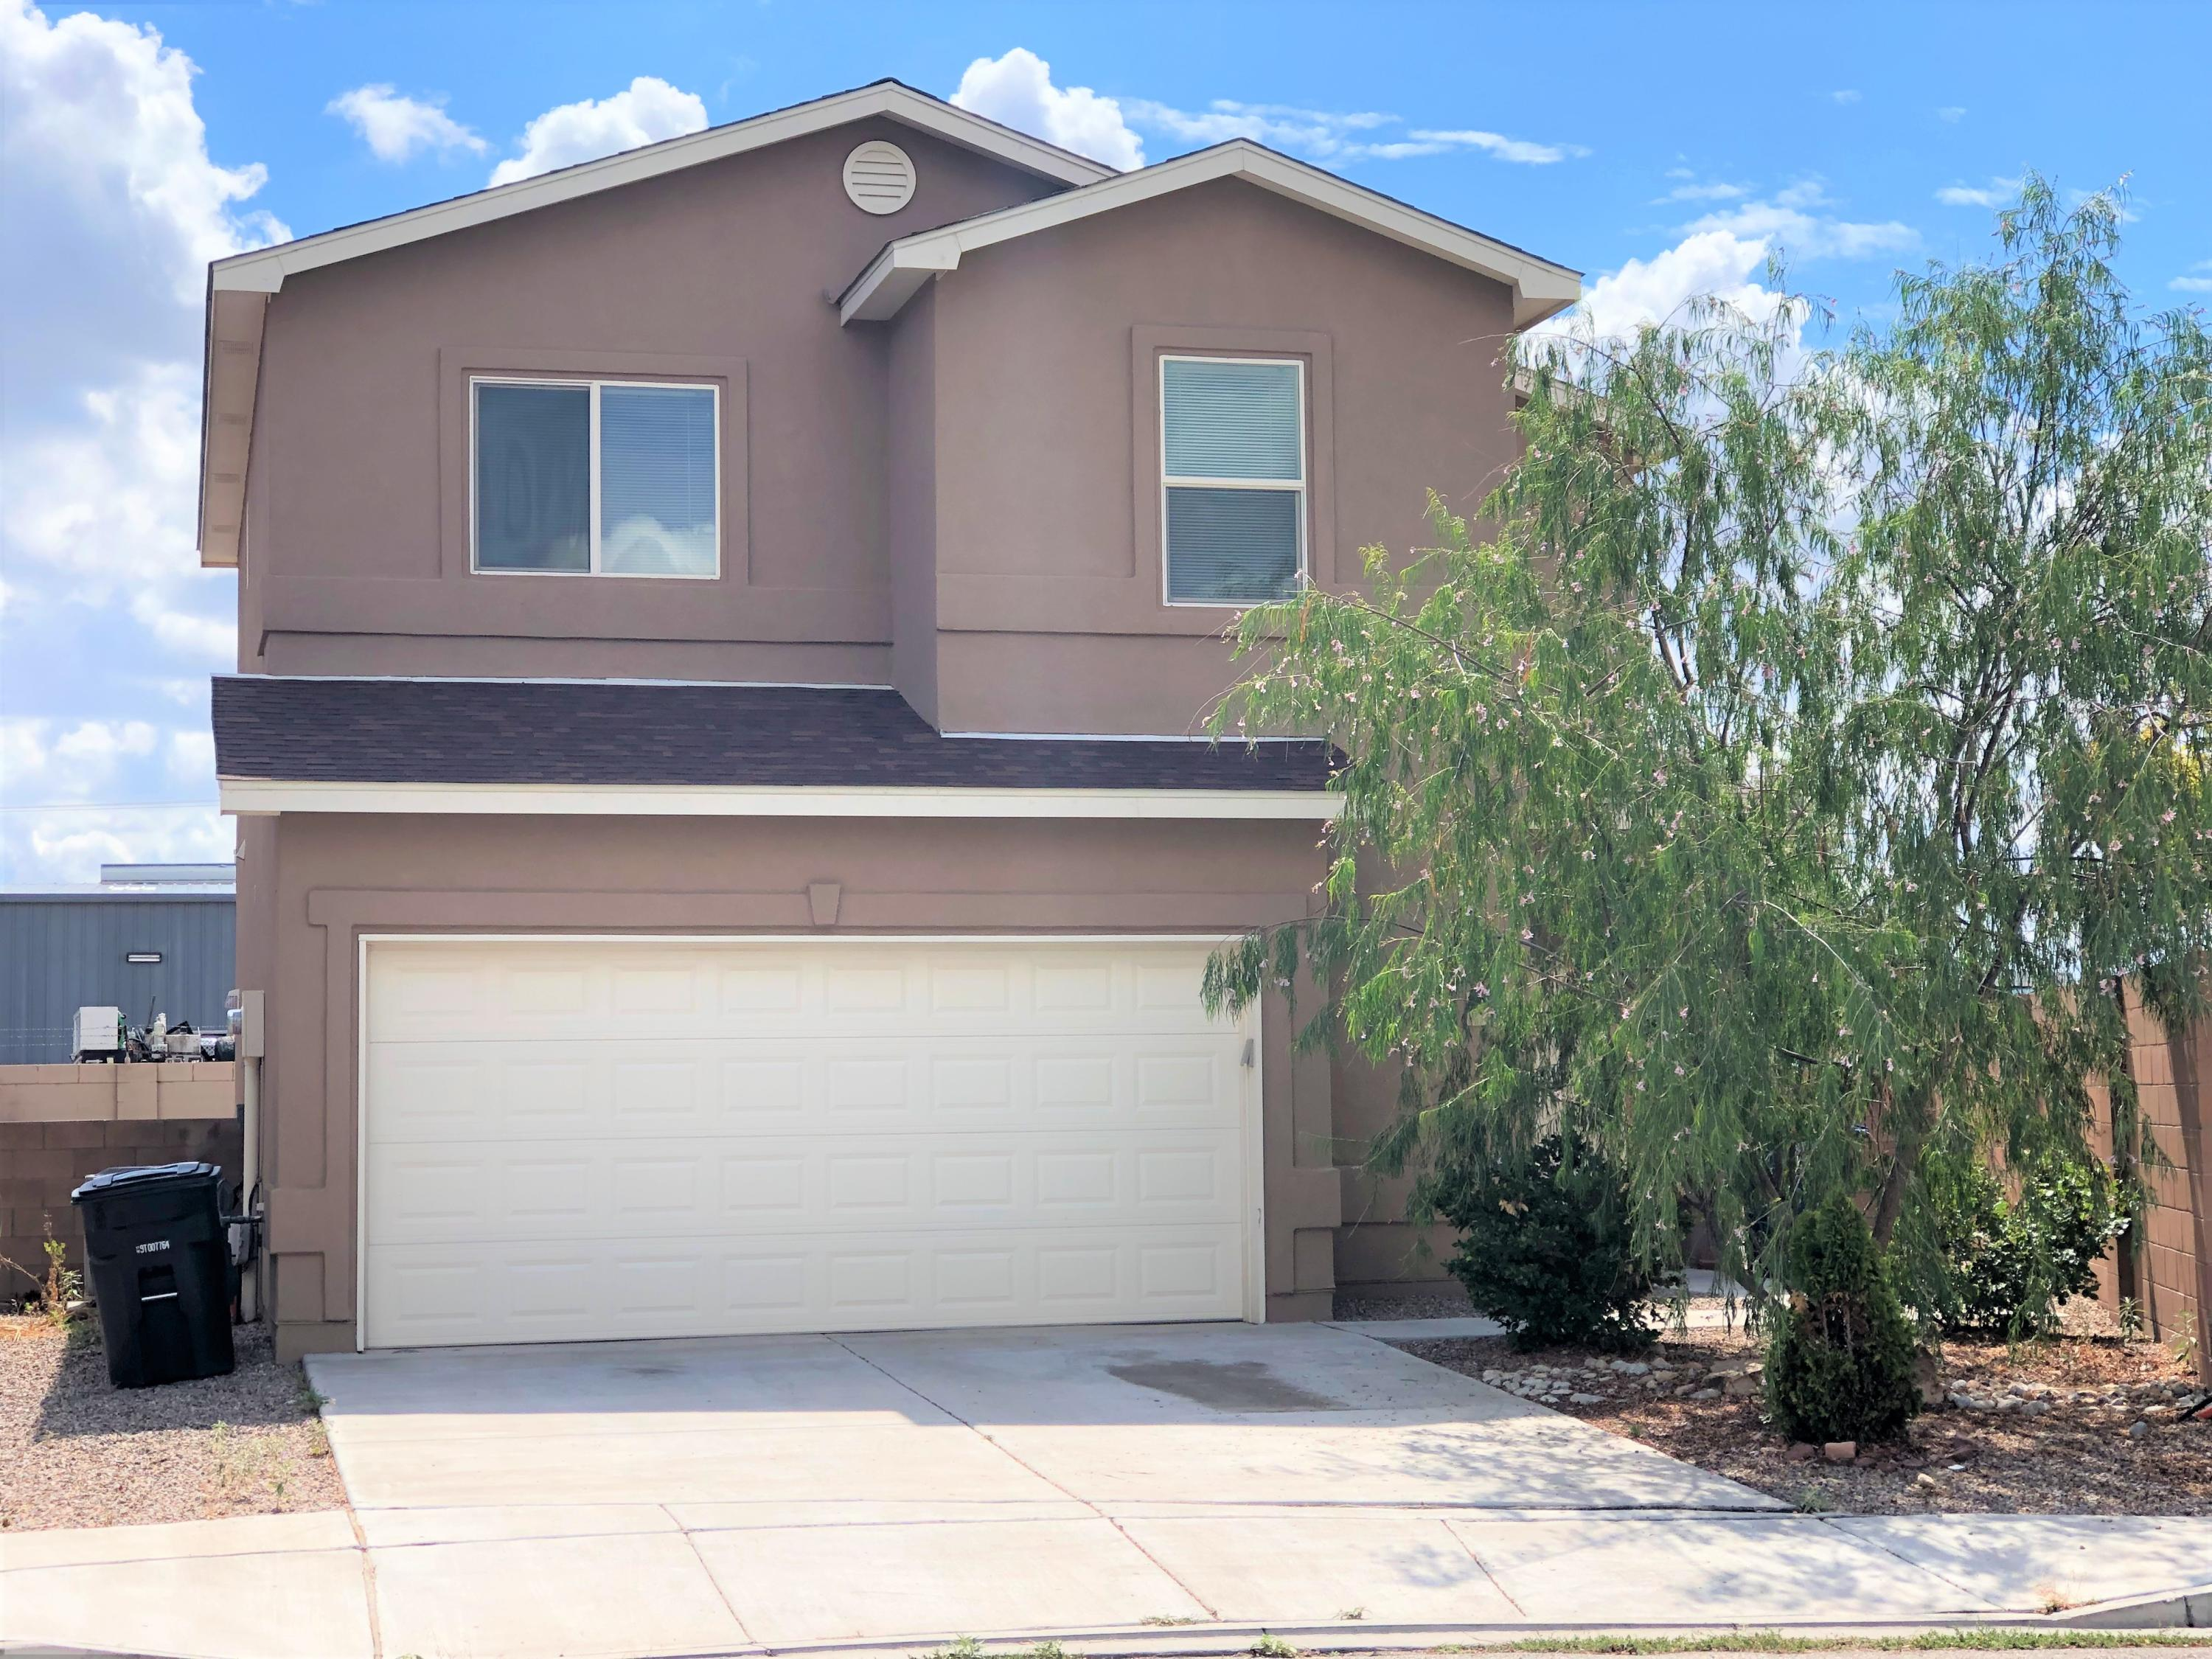 Welcome to this well maintained home located within walking distance across from West Mesa HS in a quiet neighborhood.  Conveniently located next to I-40 freeway, close to shopping and restaurants.  3 bedrooms, 2.5 baths, open floor design with kitchen island and stainless steel appliances. New floor was put in 2020. Raised ceiling and refrigerated air will make the summer days super comfy.  Master bedroom comes with large walk in closet.  Washer and dryer stay with the sale.  This is a gem, don't wait to schedule a showing.